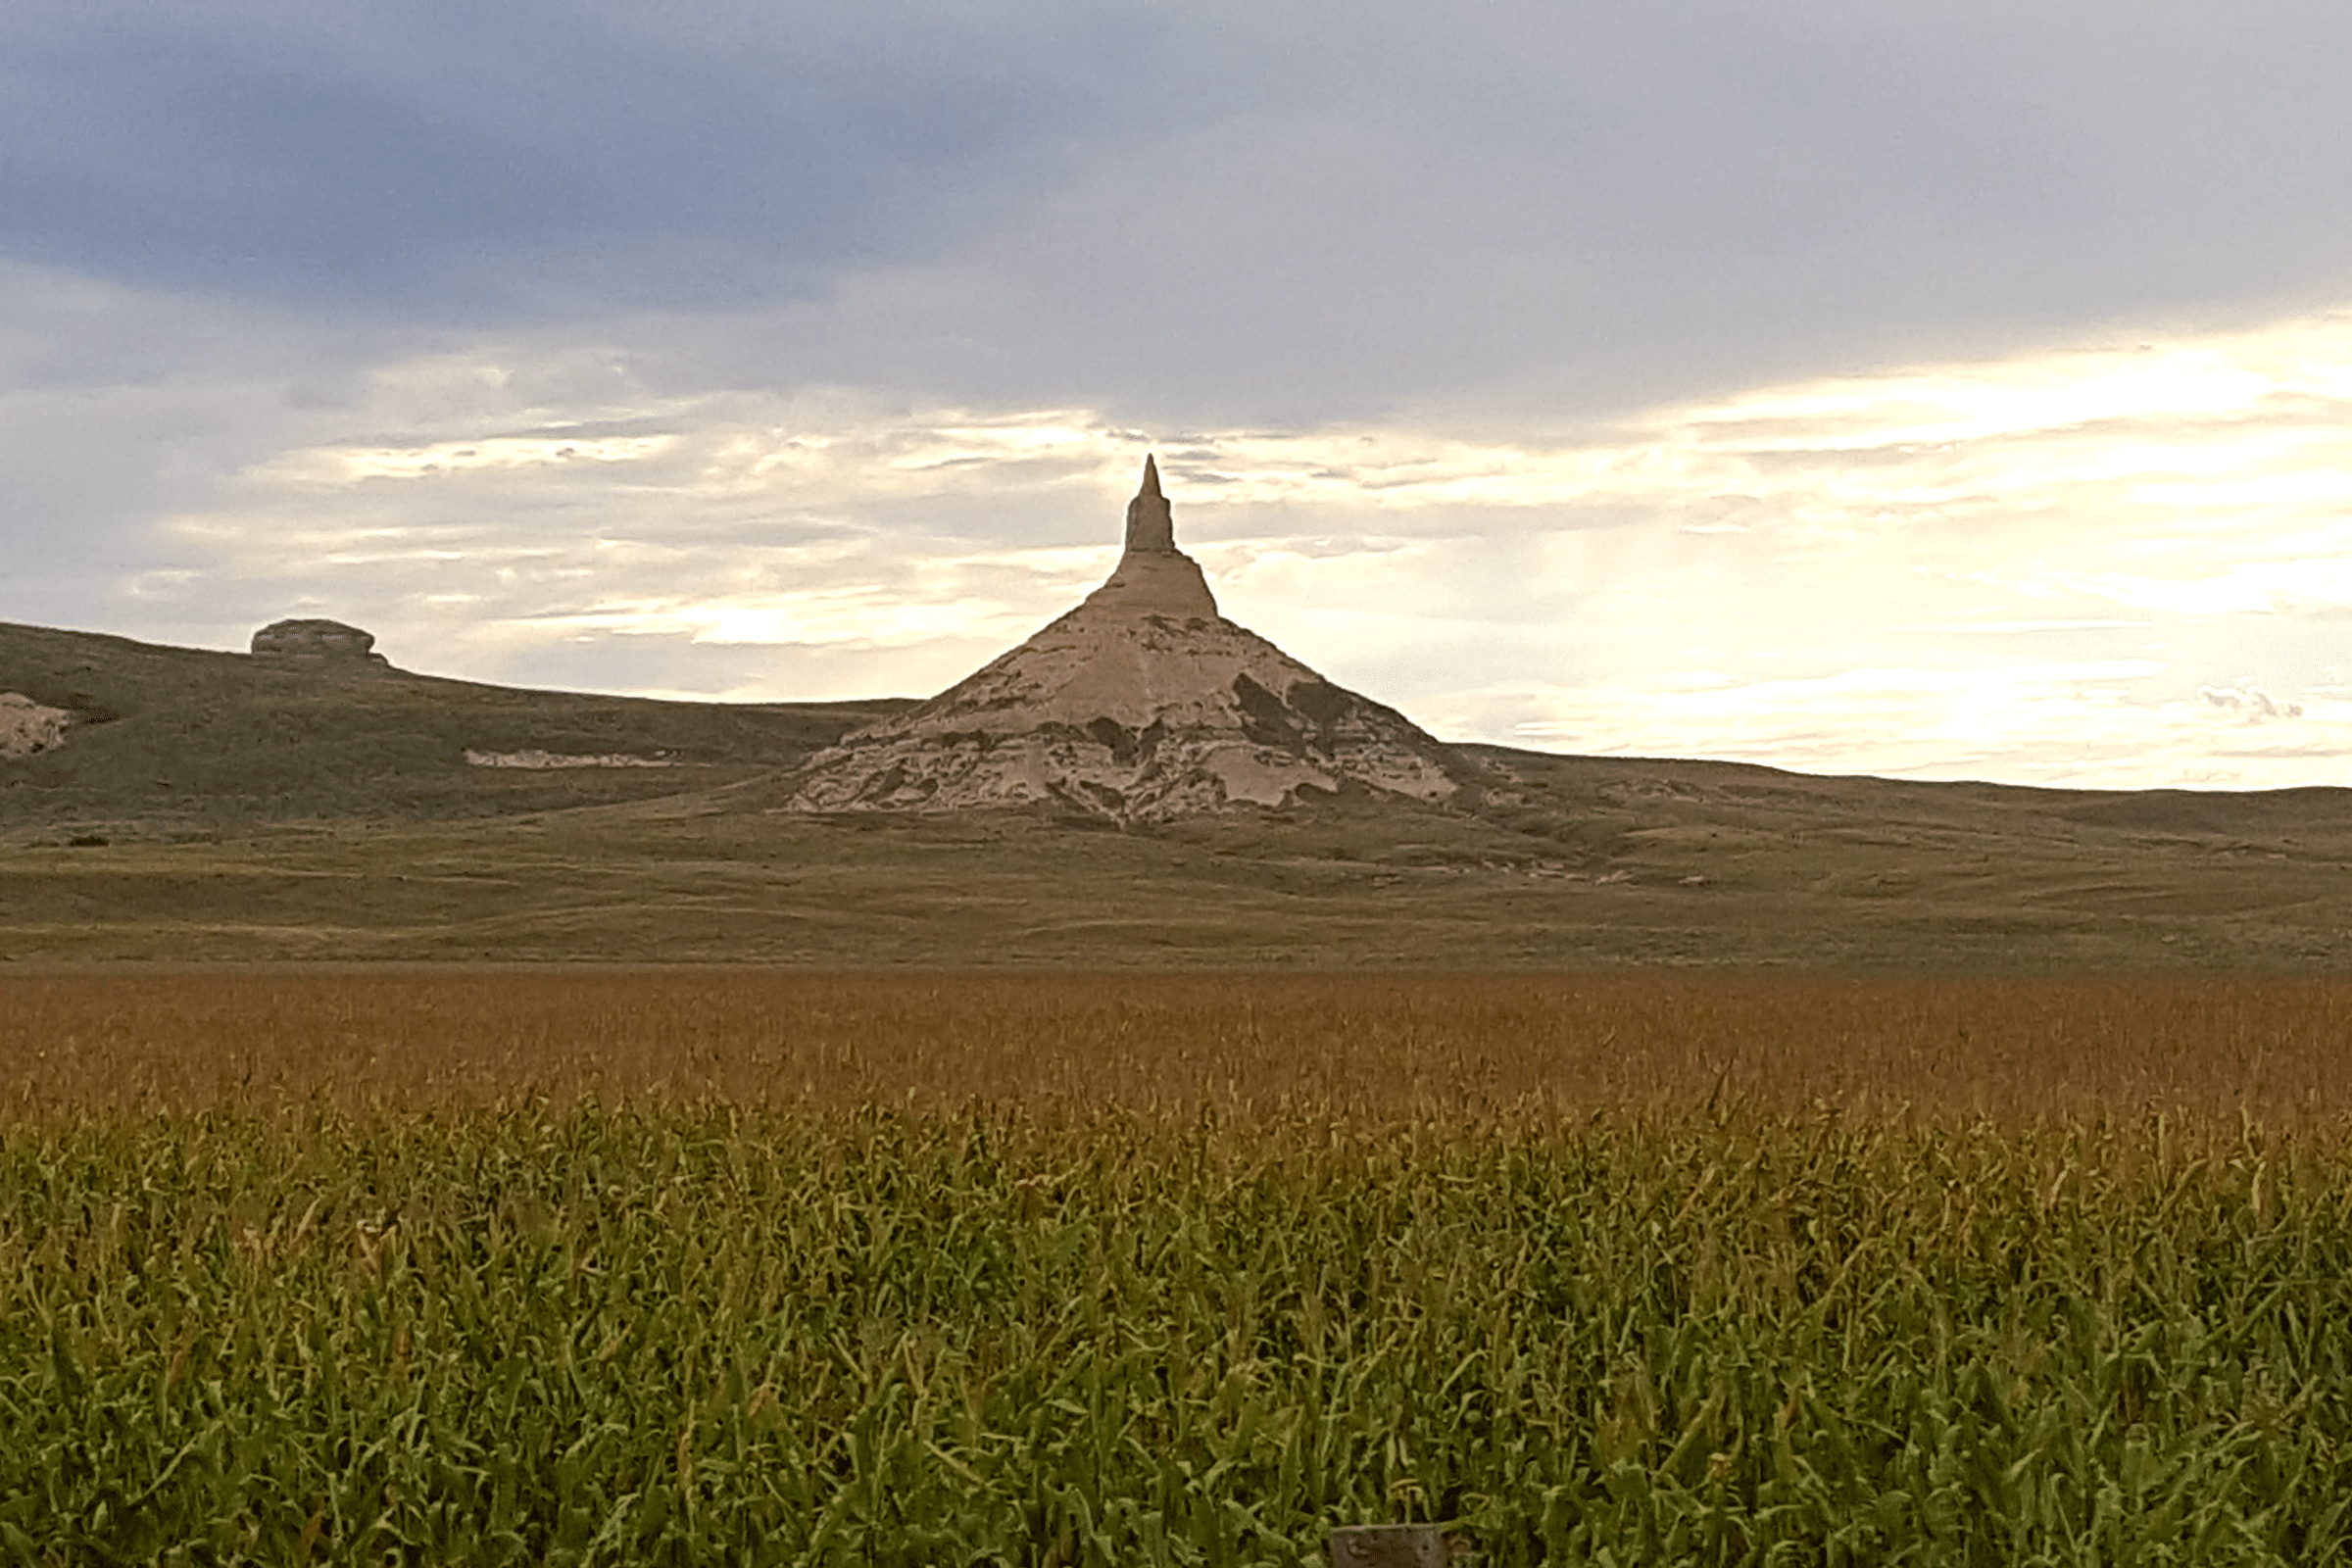 Western Nebraska's Chimney Rock is the perfect location for an instagram selfie Photo Courtesy Patrick T Cooper